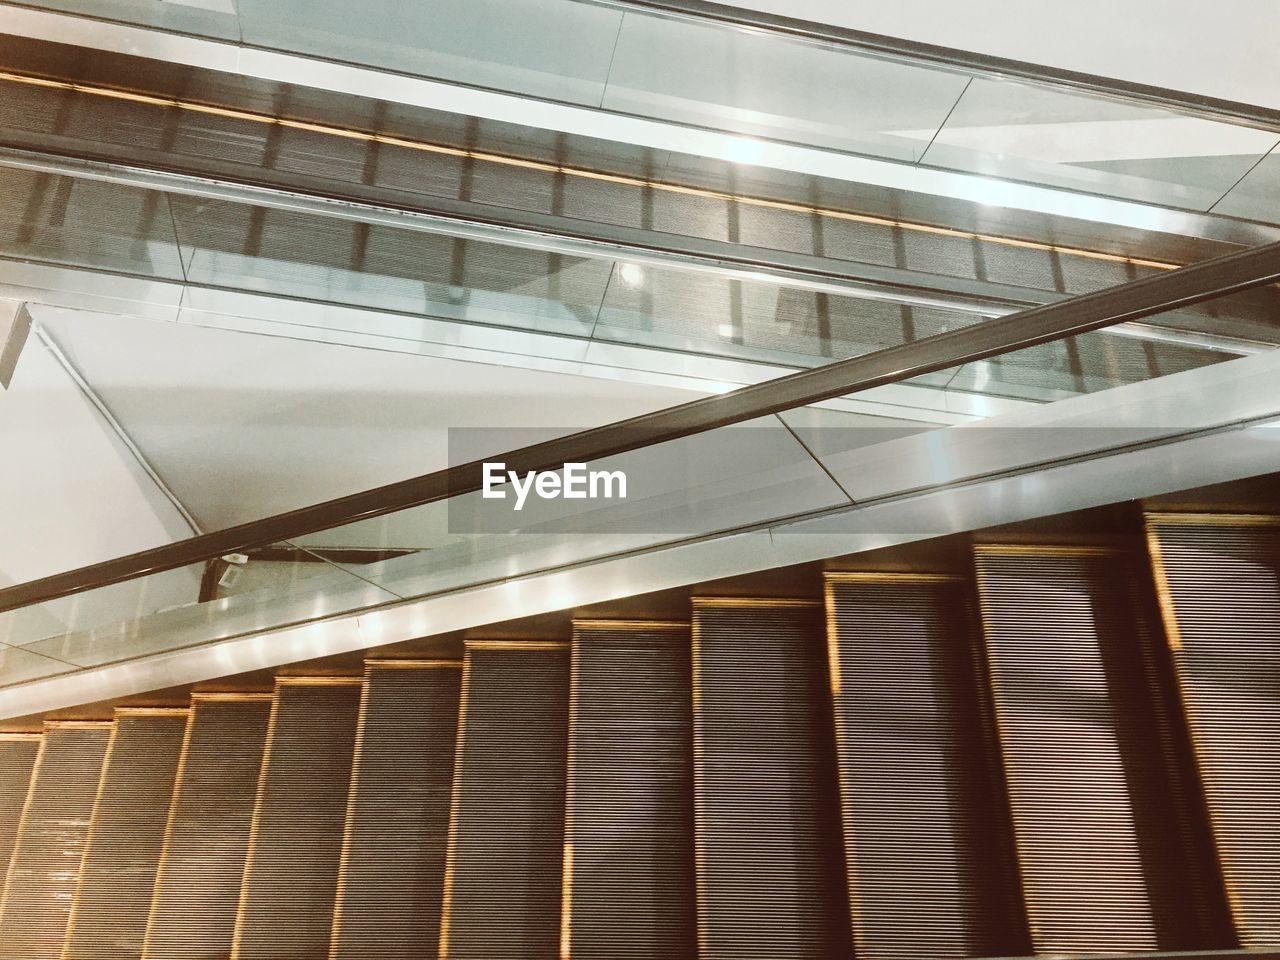 architecture, staircase, railing, built structure, steps and staircases, low angle view, indoors, modern, no people, building, illuminated, pattern, metal, escalator, connection, glass - material, day, ceiling, roof beam